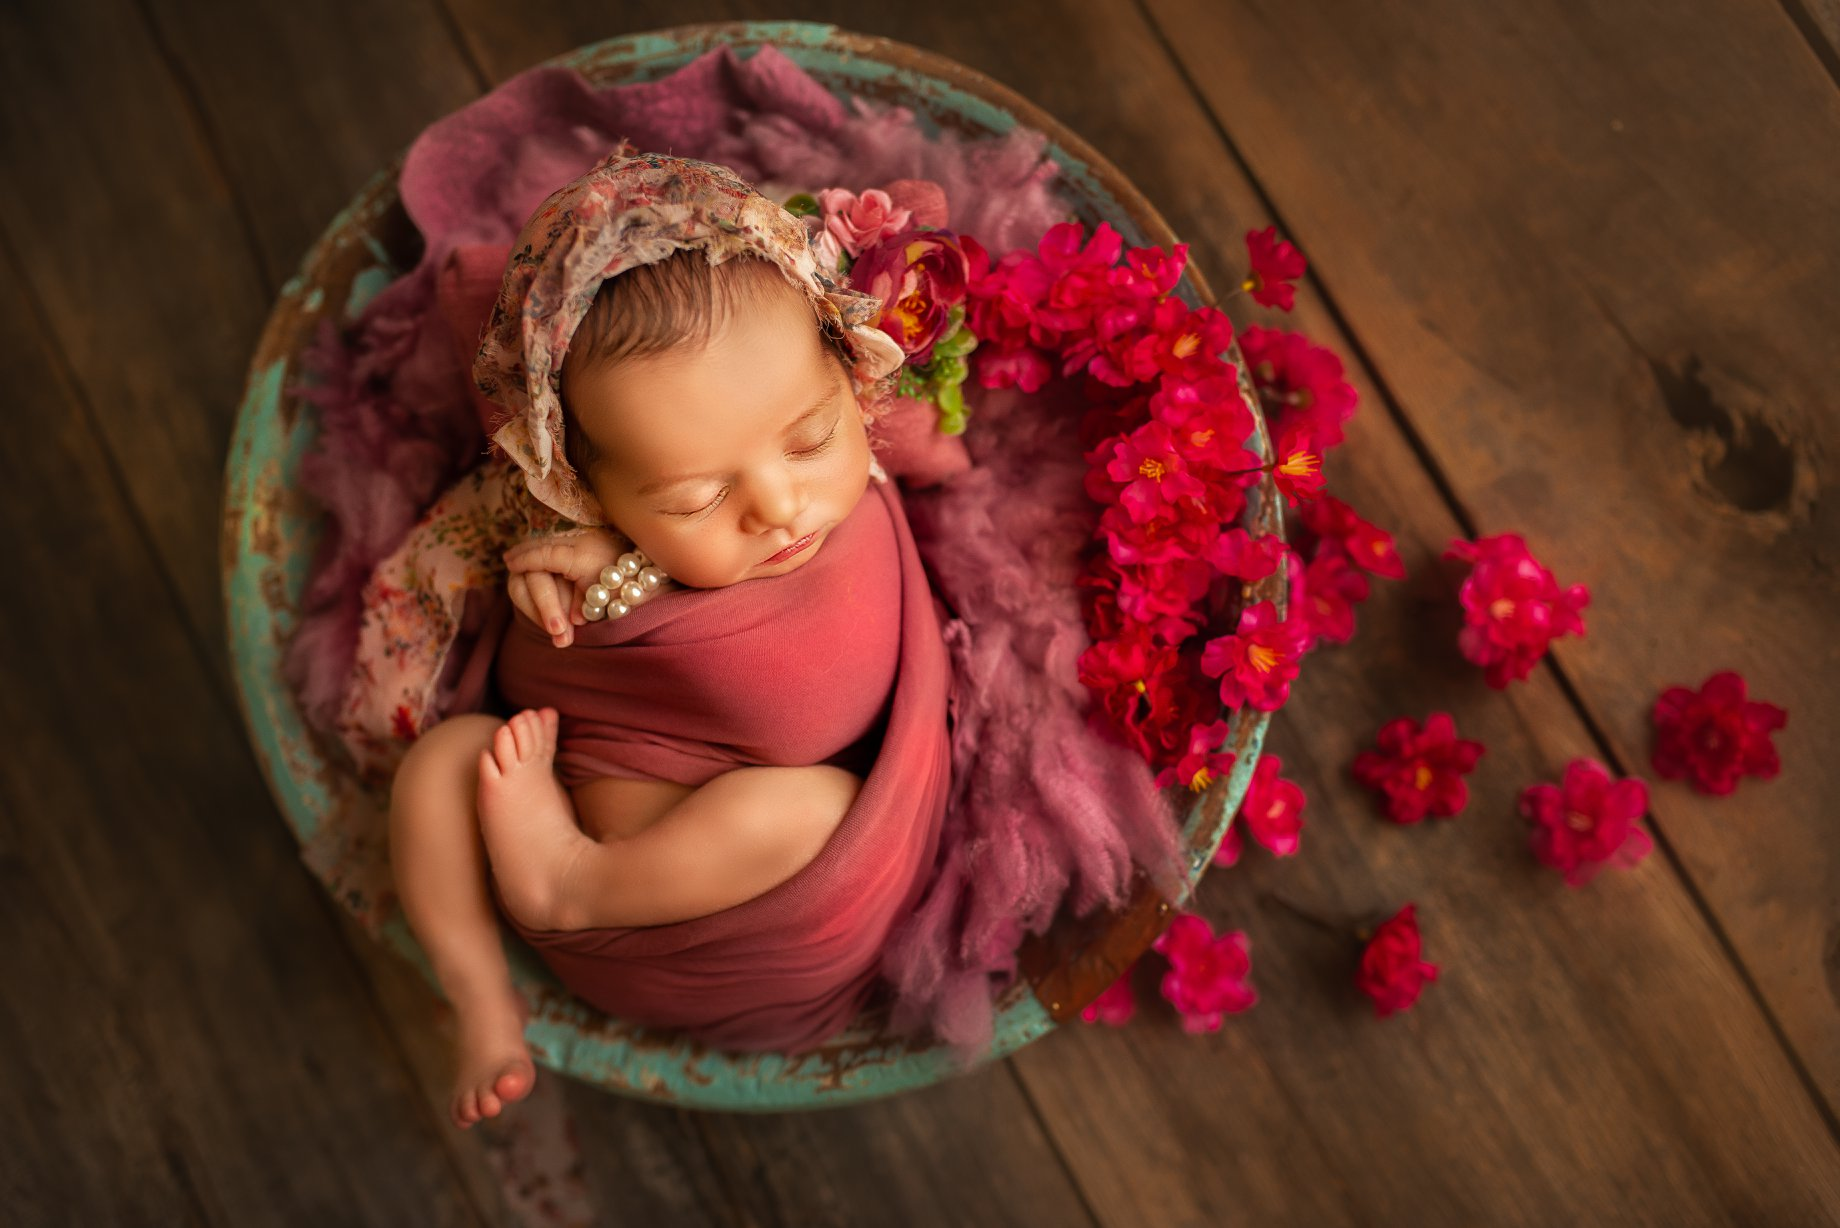 Newborn baby Photoshoot ideas by Sujata Setia in London available globally| But Natural Photography